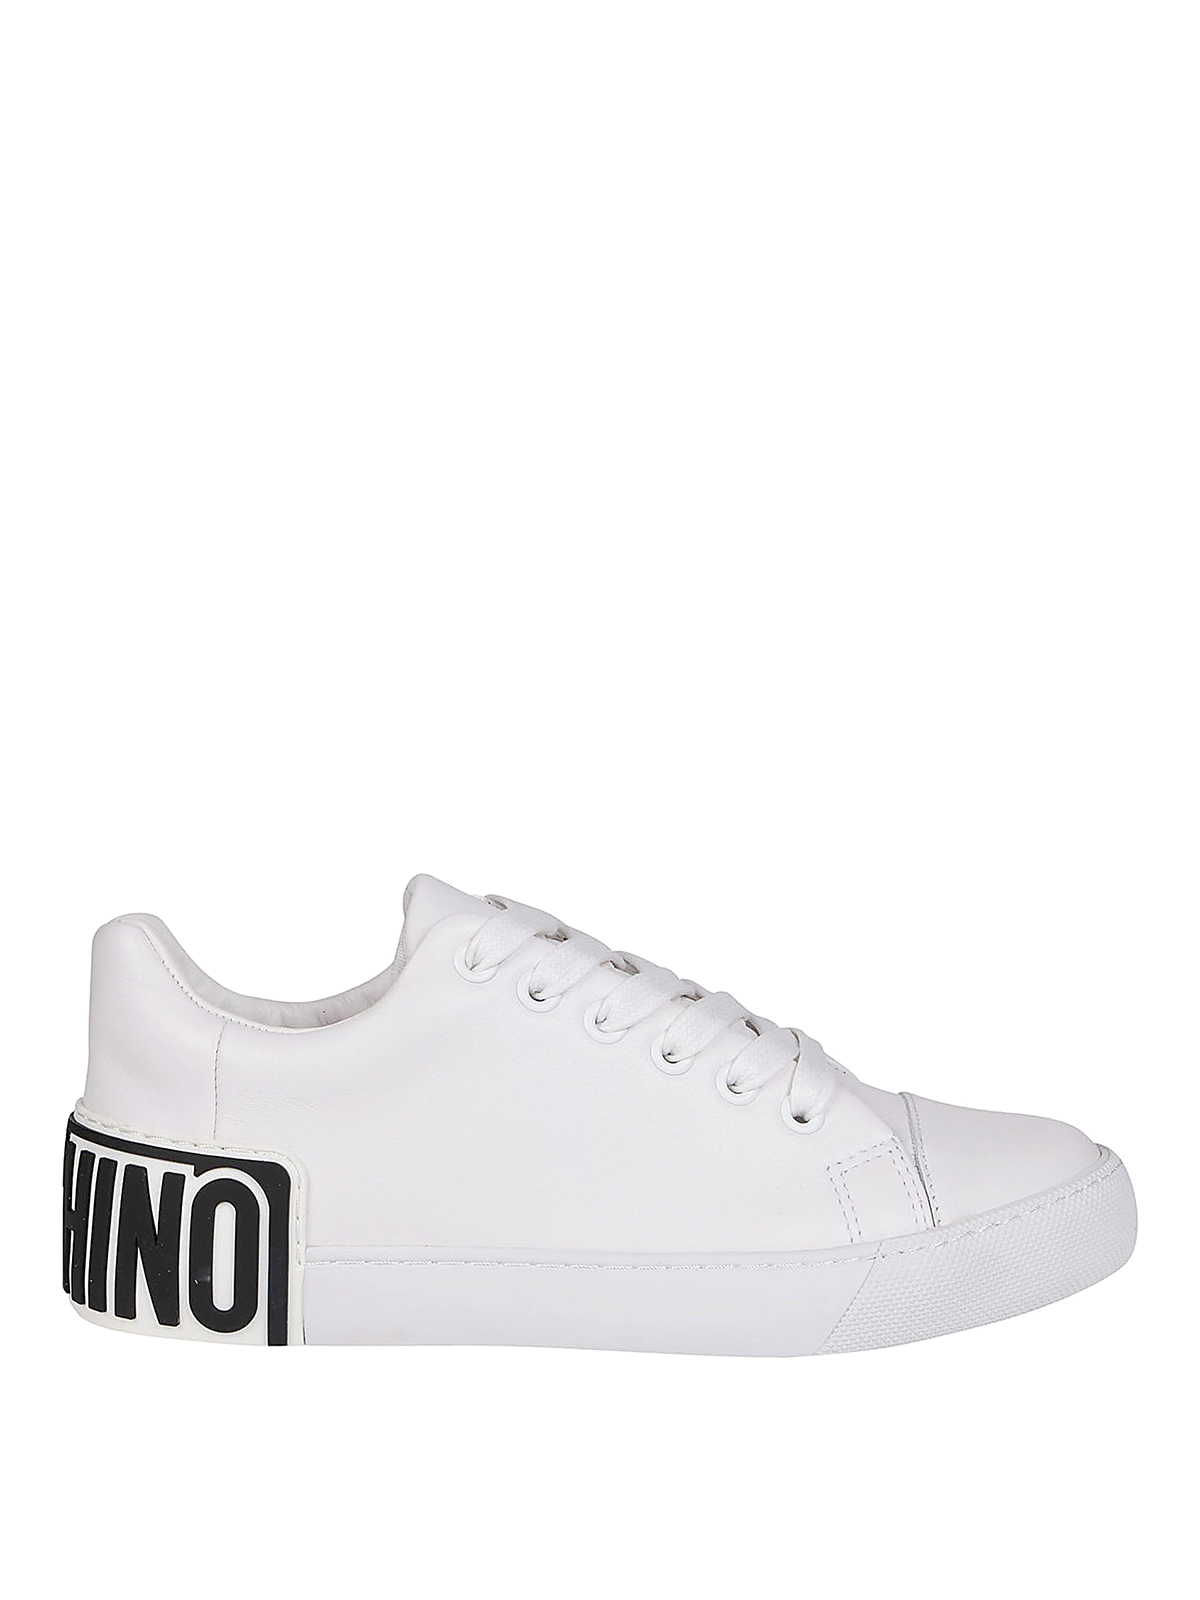 Moschino RUBBER LOGO PATCH SNEAKERS